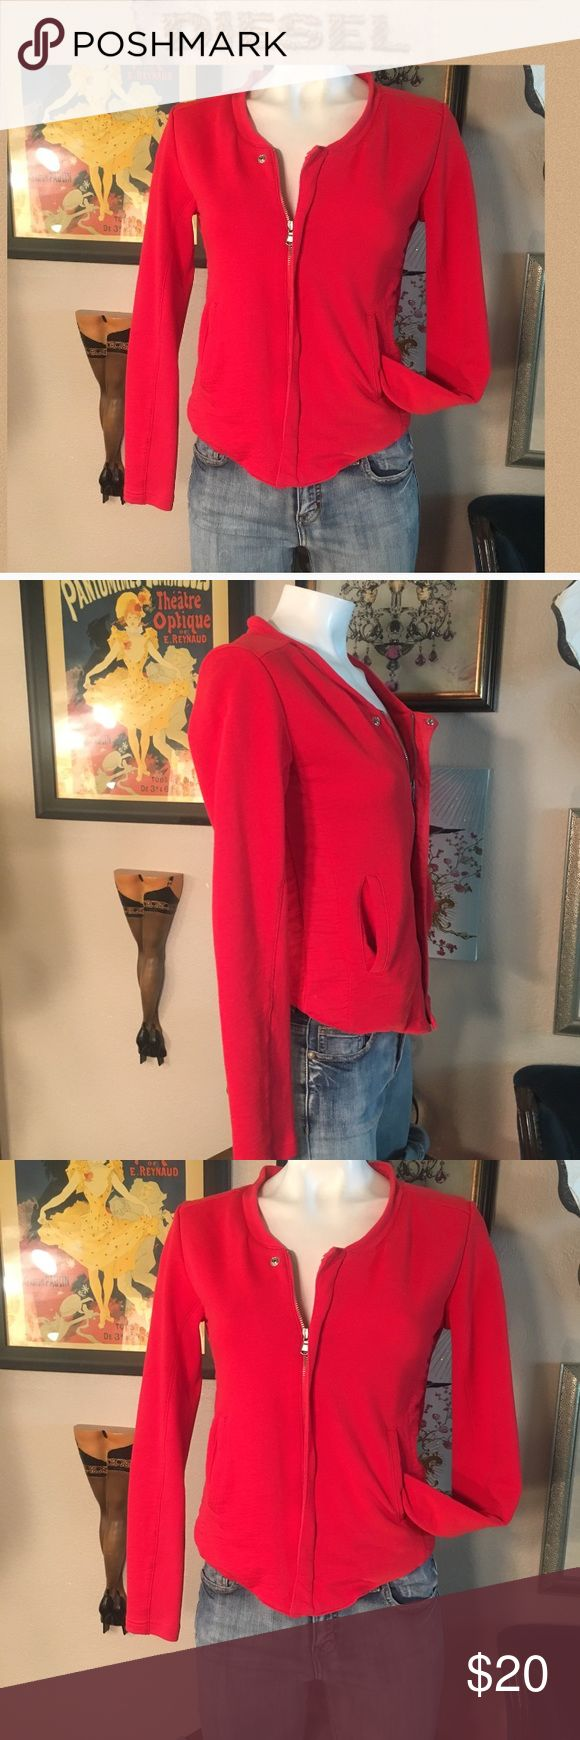 Diesel red jacket/top Zip front, side gathers, gently worn condition, price reflects. True small Diesel Tops